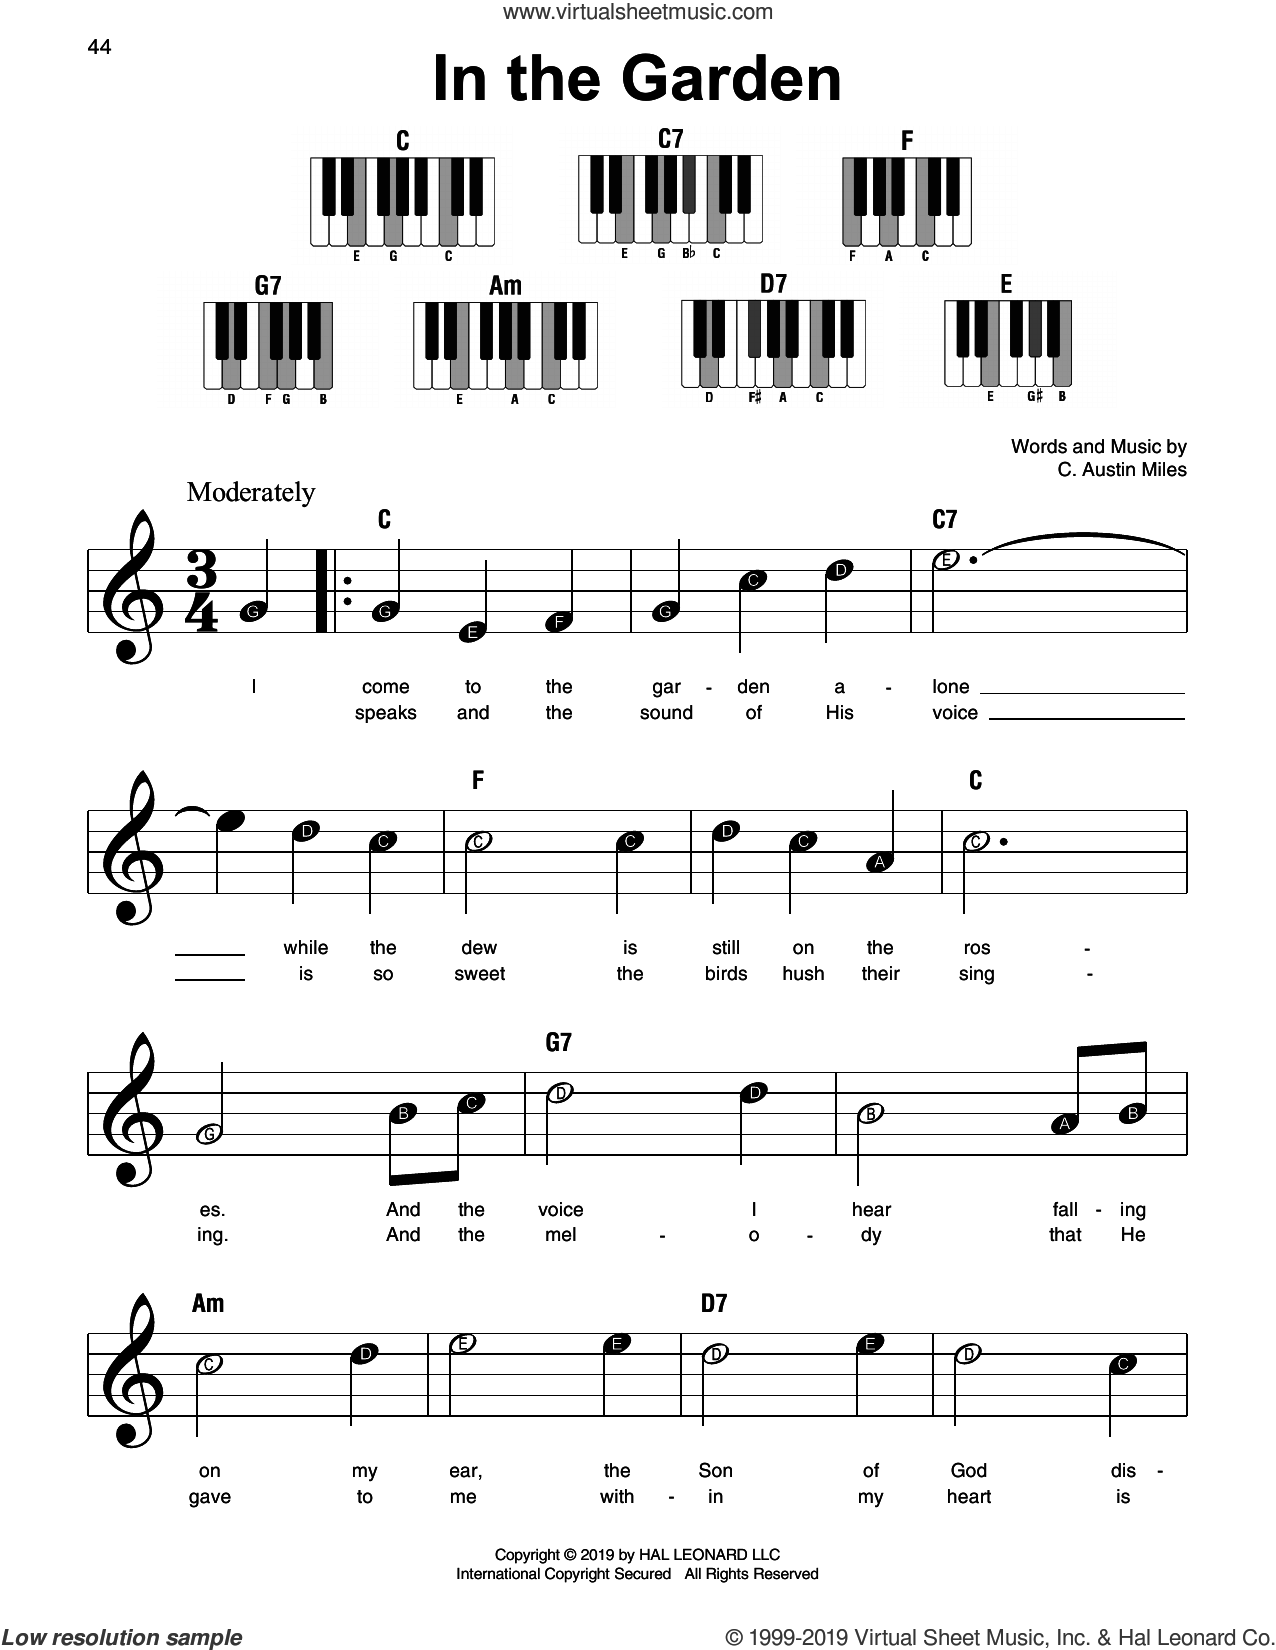 In The Garden sheet music for piano solo by C. Austin Miles, beginner skill level